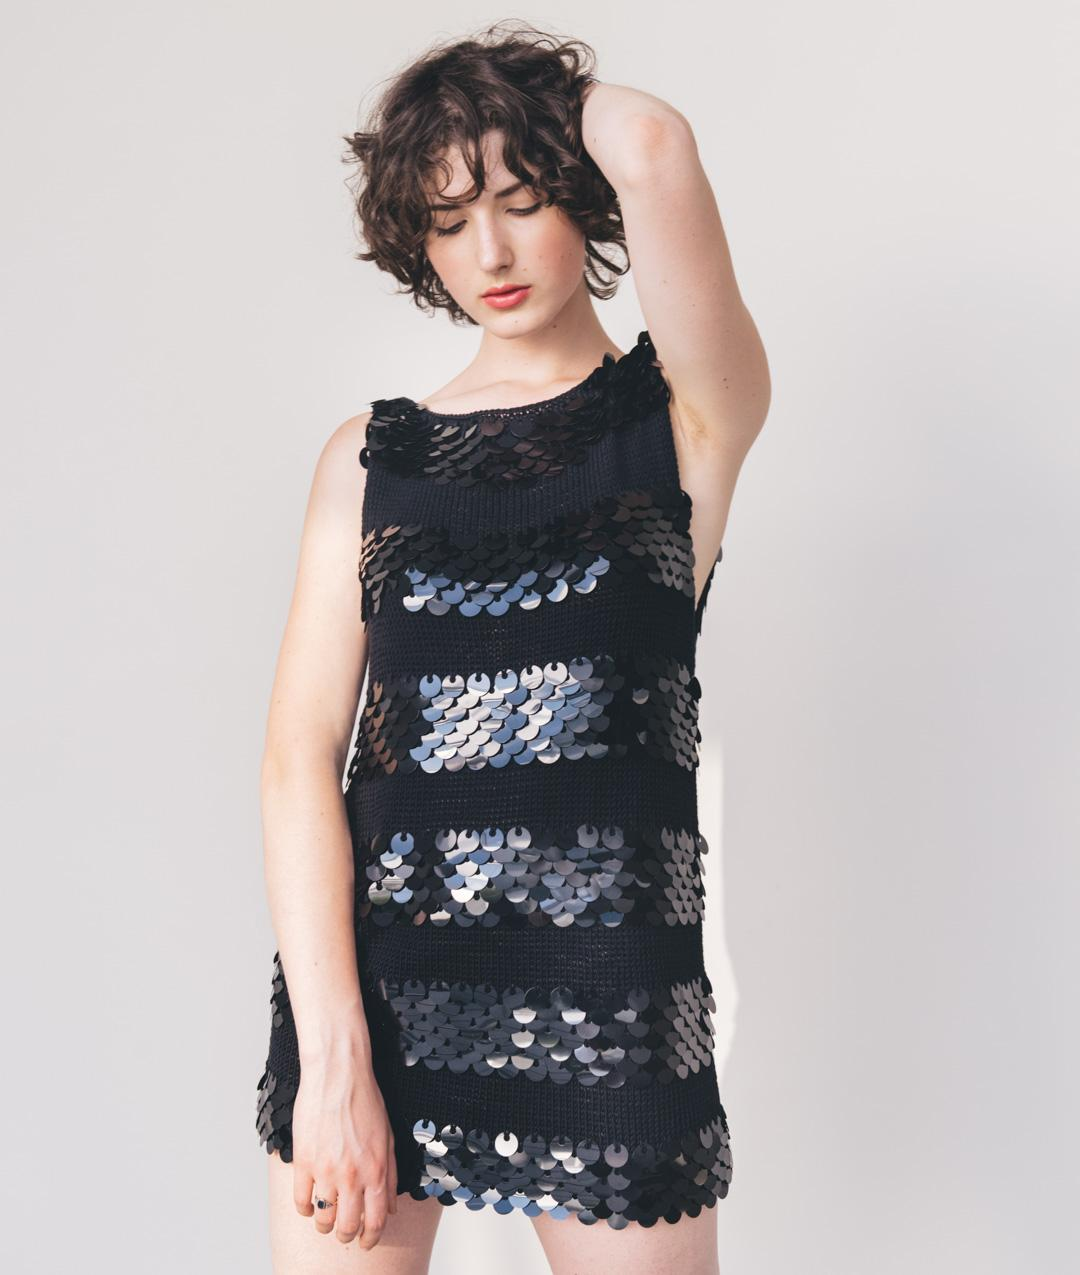 Andromeda Collection - Dress - Pluto Dress - 1